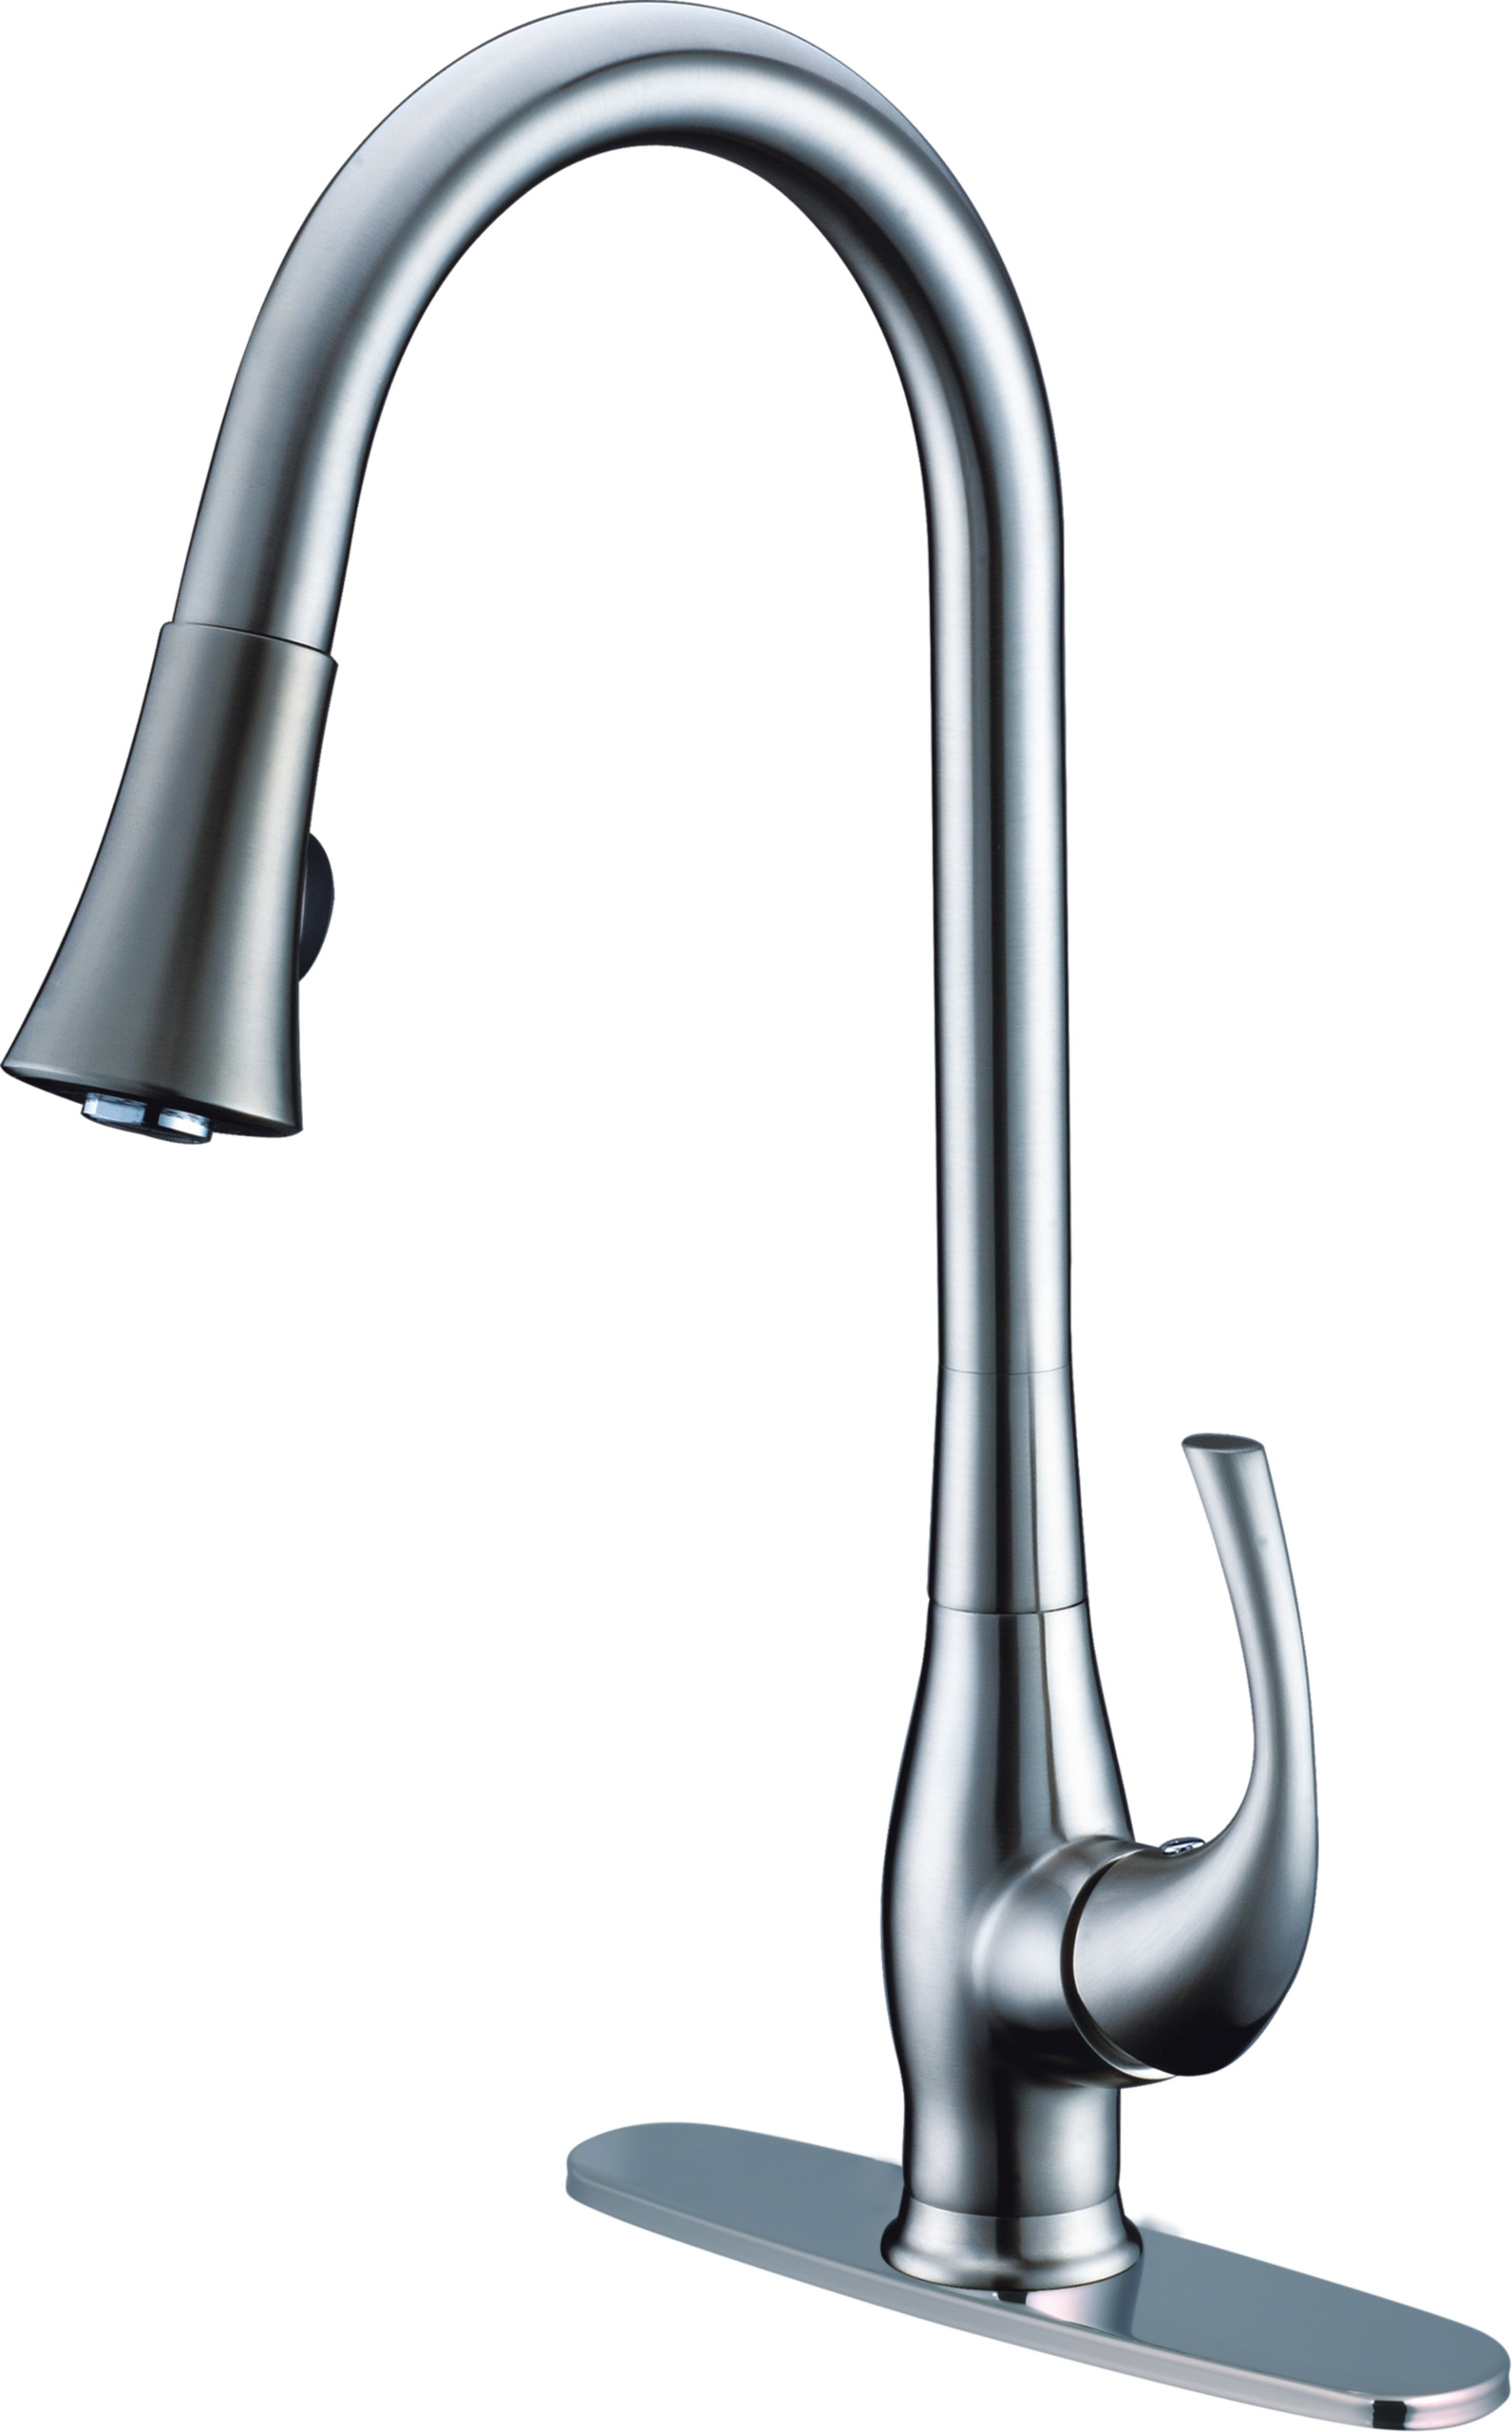 faucets of talis pull down sink hansgrohe hardware picture kohler kitchen malleco elegant m ace faucet